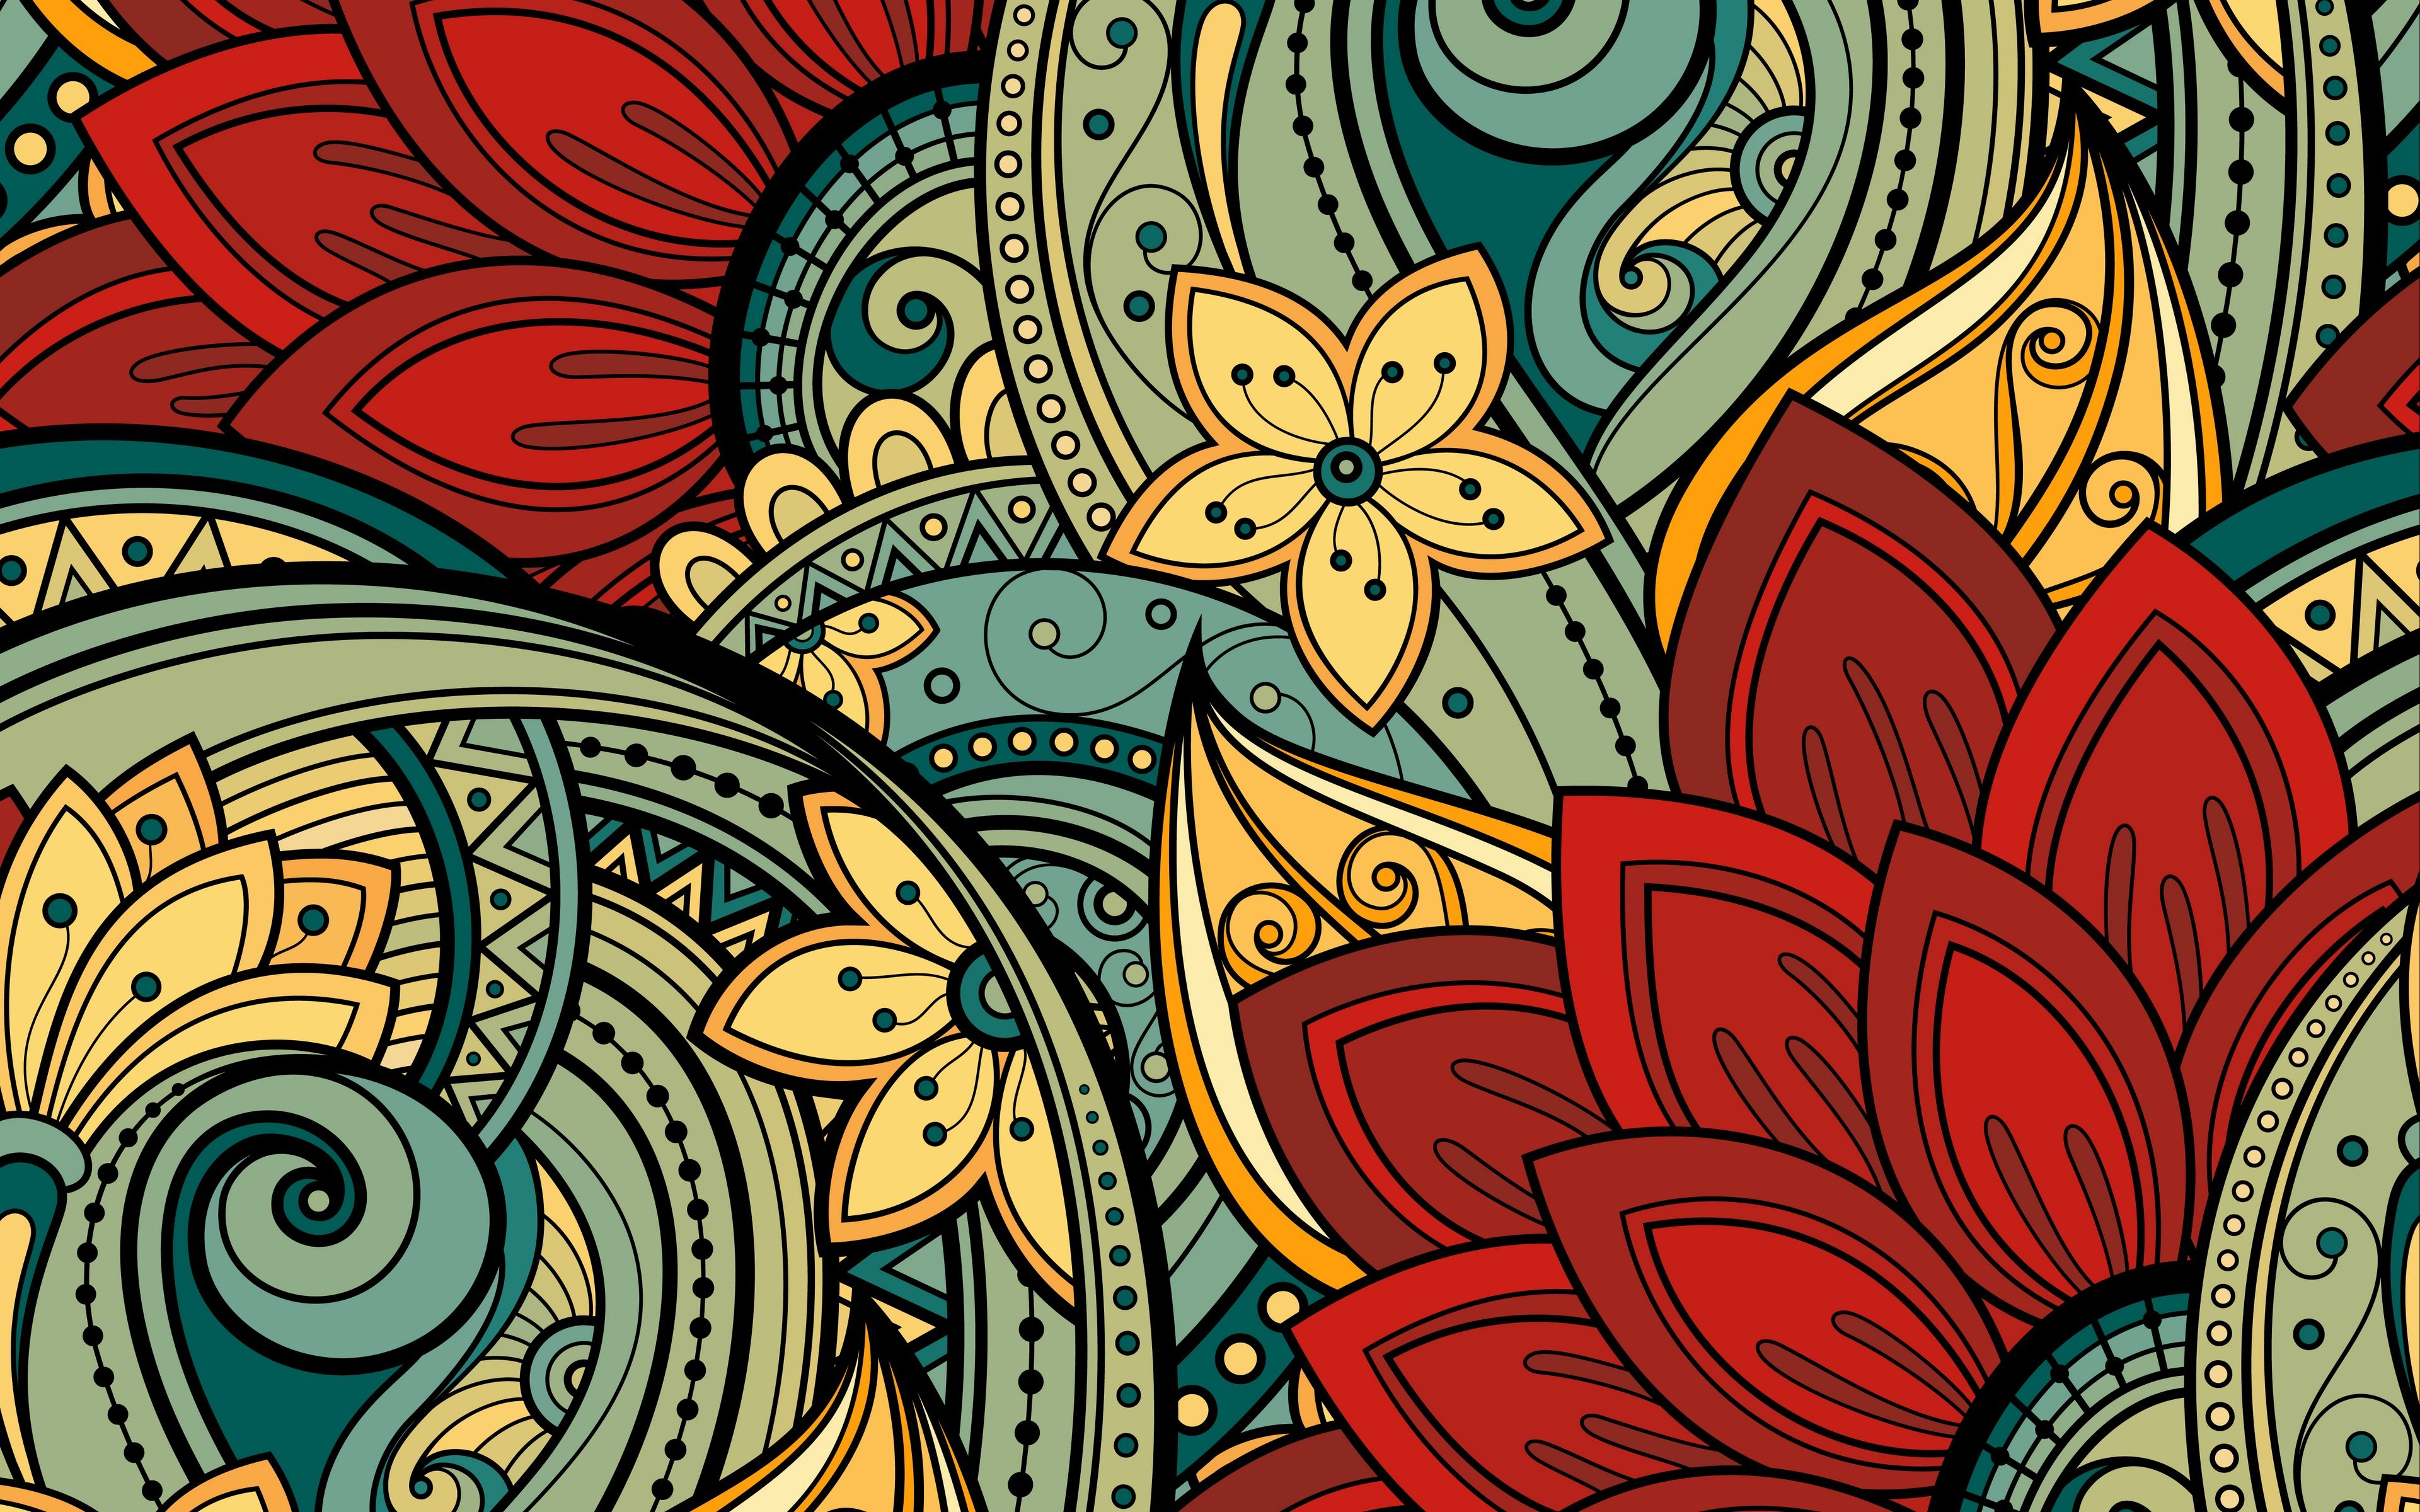 Download Wallpaper 3840x2400 Patterns Flowers Ornament Vector Leaves Colorful 4k Ultra Hd 16 10 Hd Abstract Art Wallpaper Art Wallpaper Abstract Wallpaper